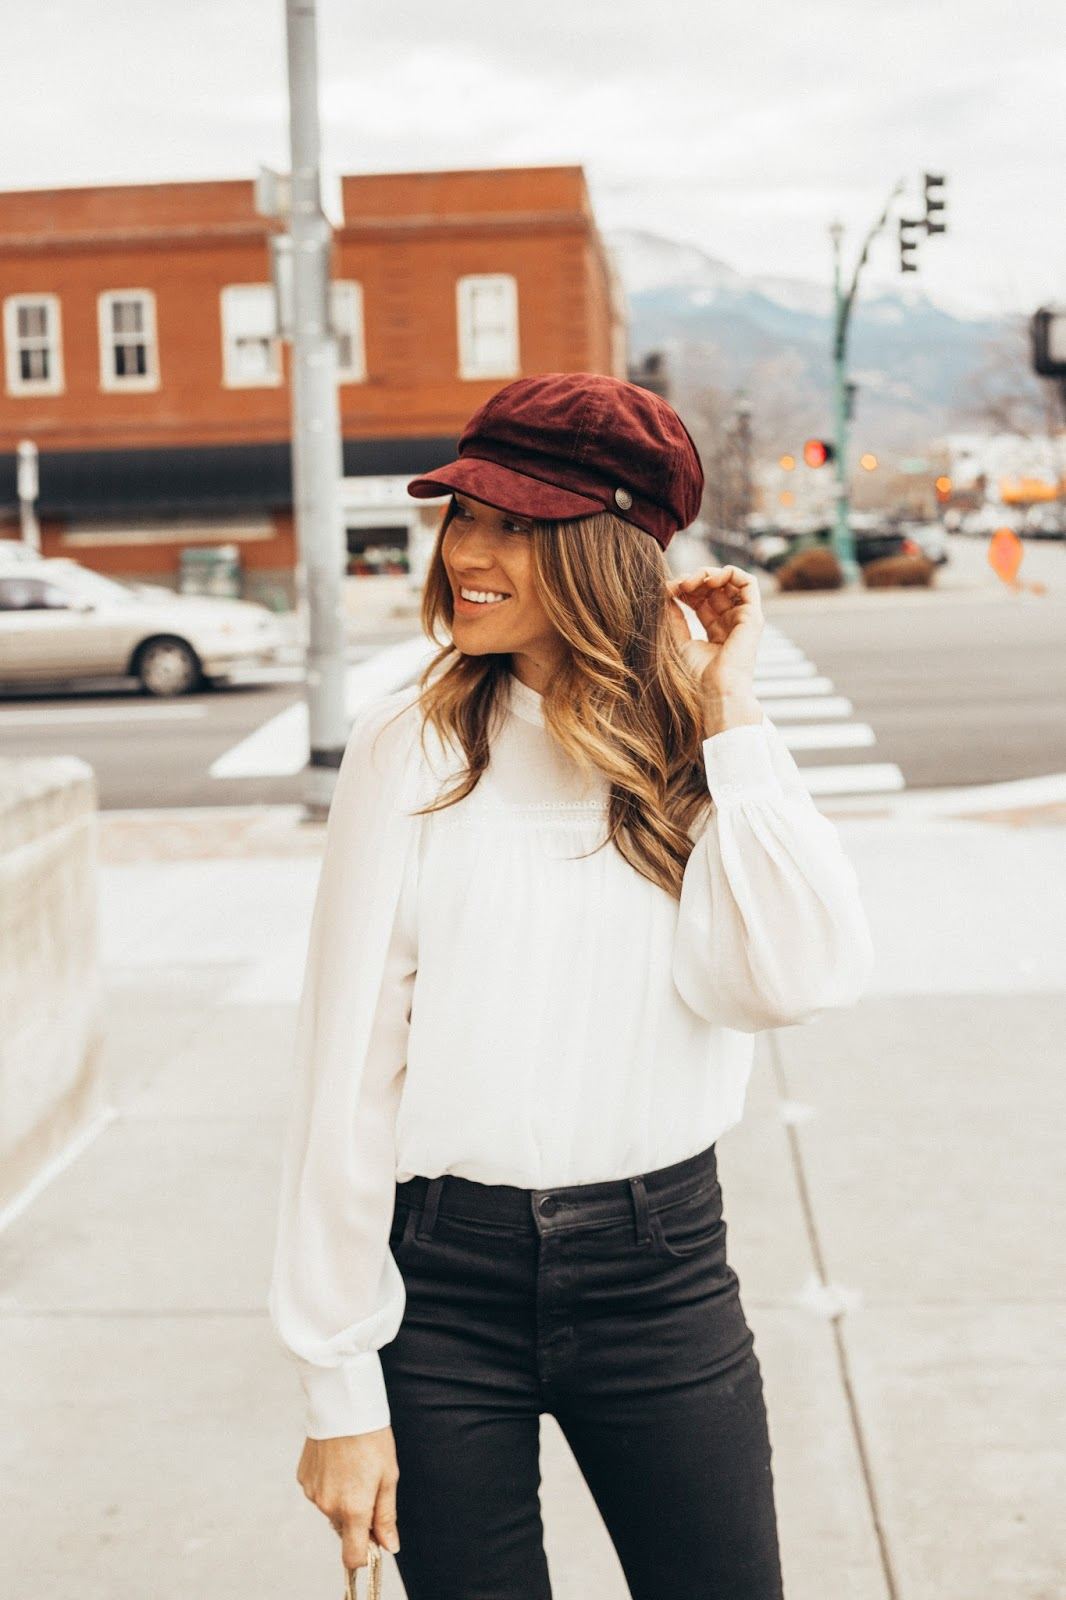 Easy Look For Work And Play by popular Colorado fashion blogger Eat Pray Wear Love